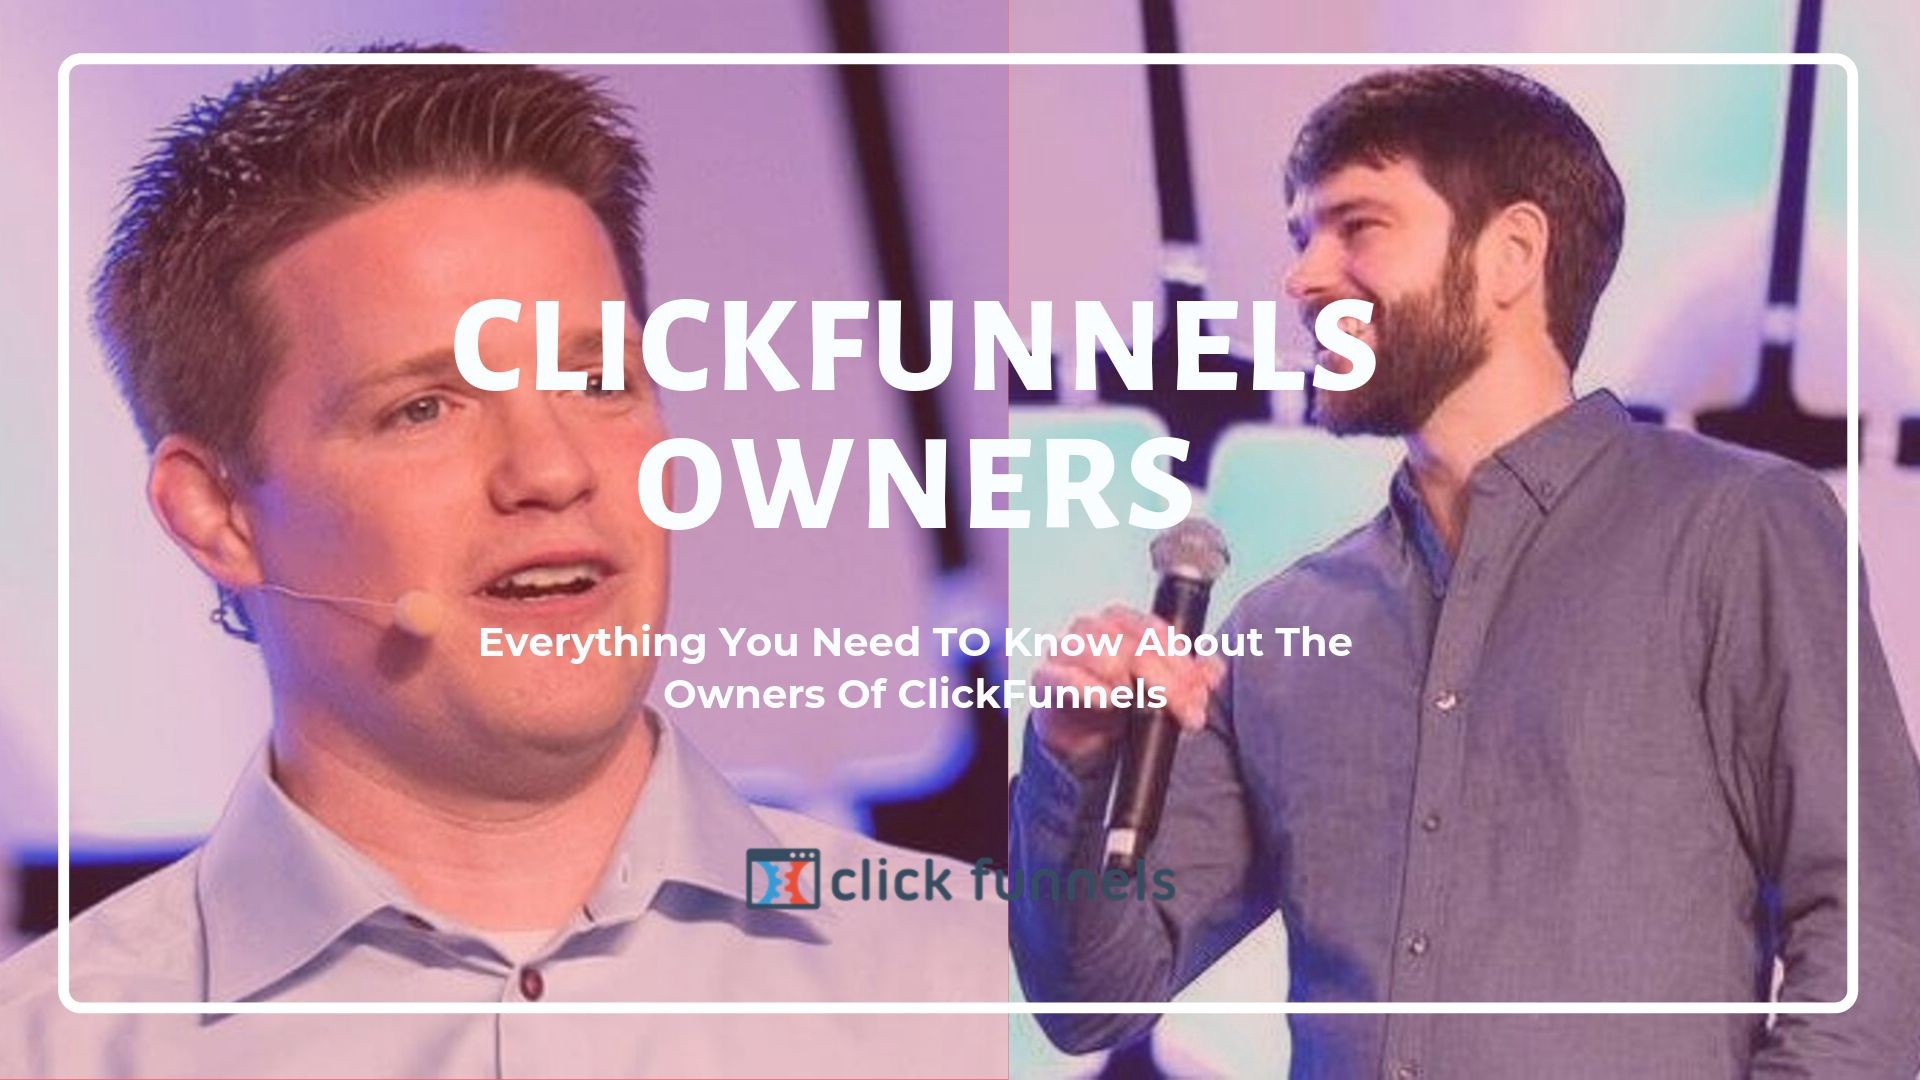 Todd Dickerson and Russell Brunson- Clickfunnels owners and founders